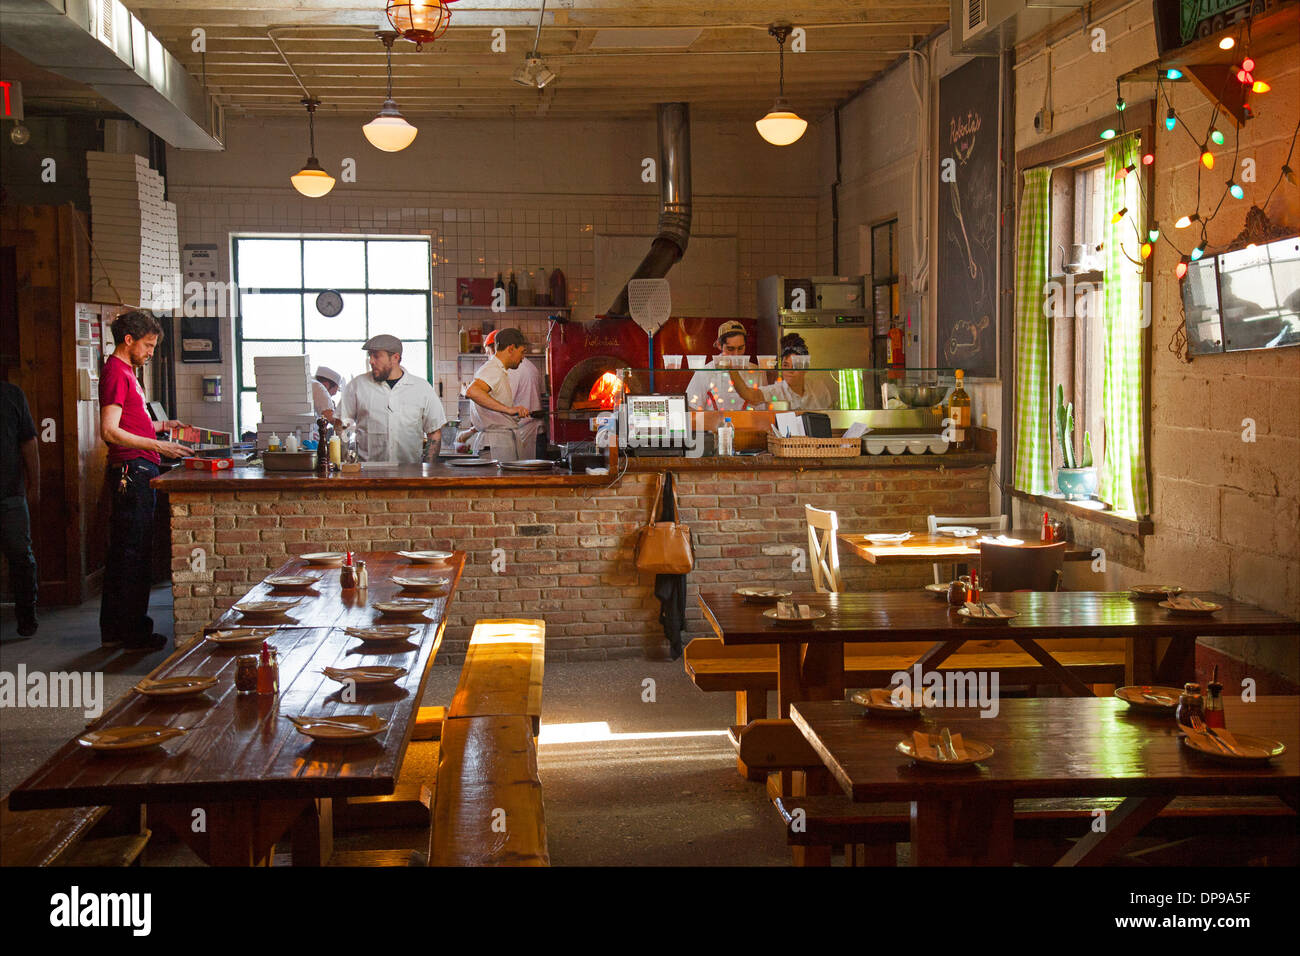 Robertau0027s Pizza Restaurant In East Williamsburg Brooklyn   Stock Image